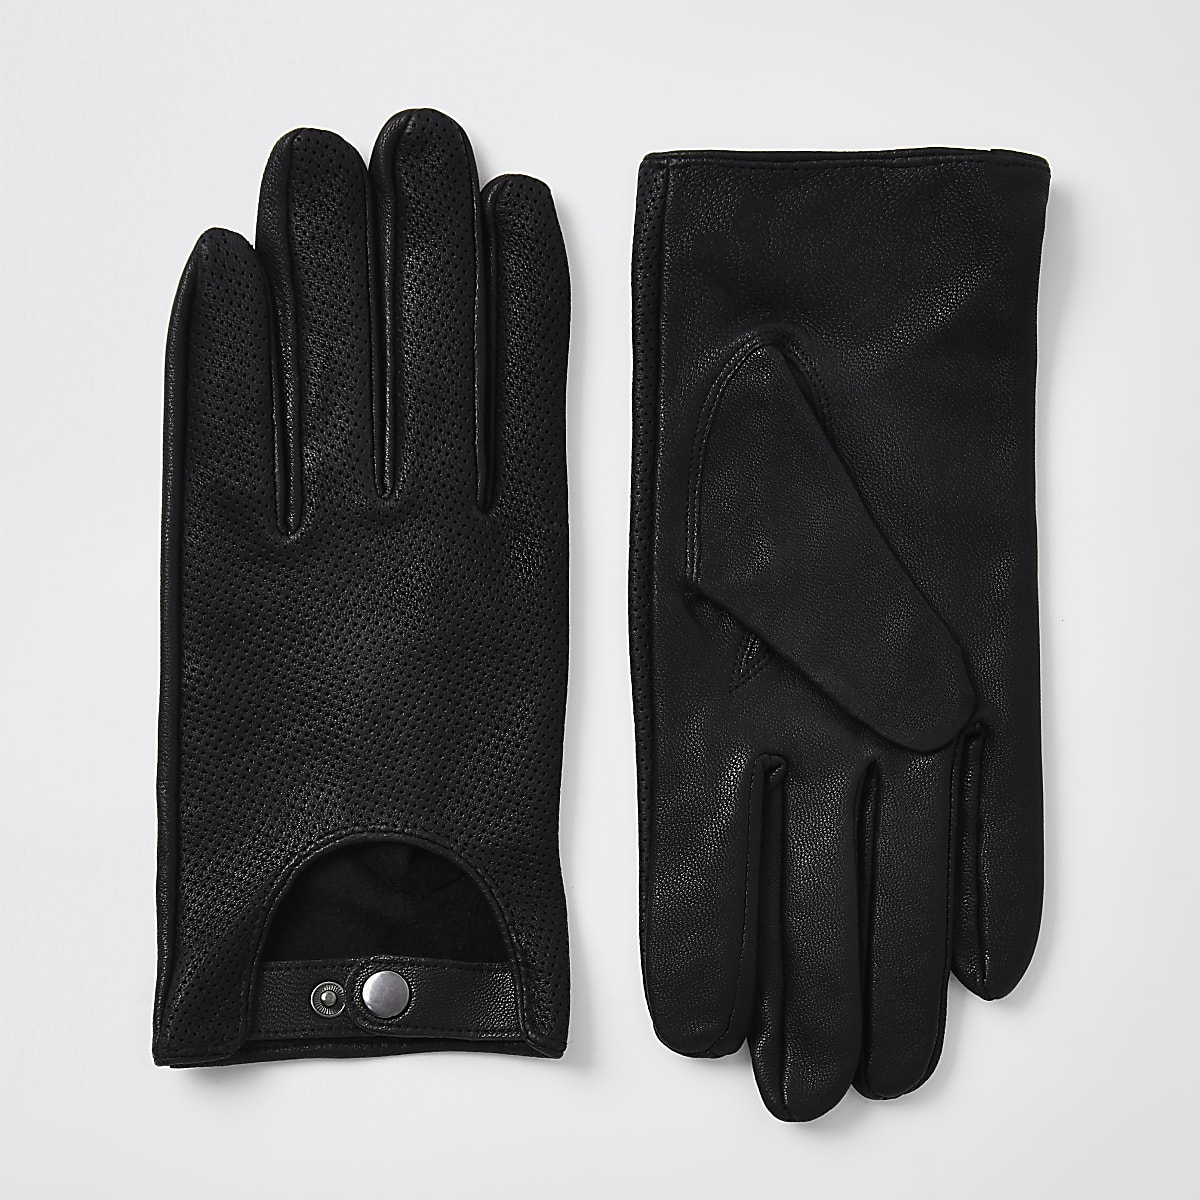 Black leather driving gloves